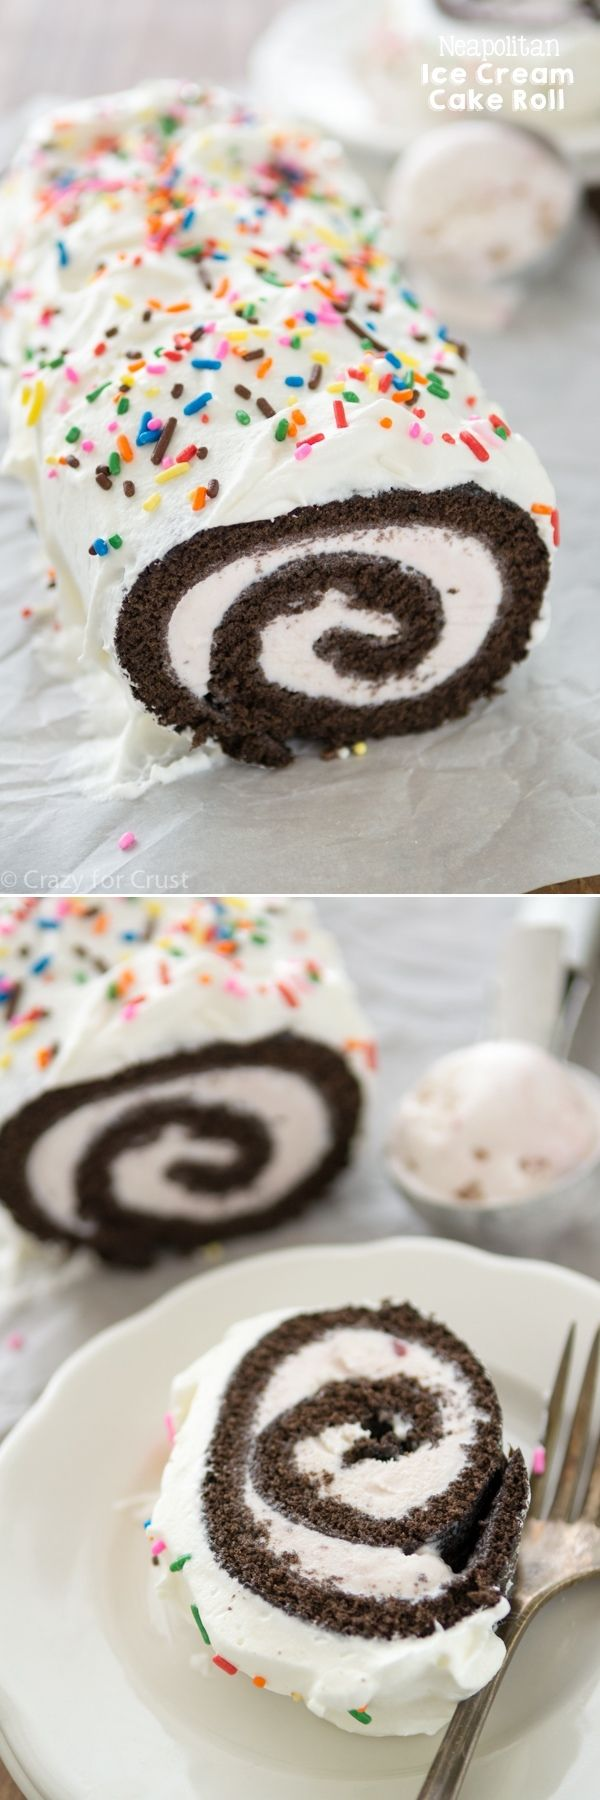 Neapolitan Ice Cream Cake Roll - use your favorite flavor ice cream to make your perfect cake roll!